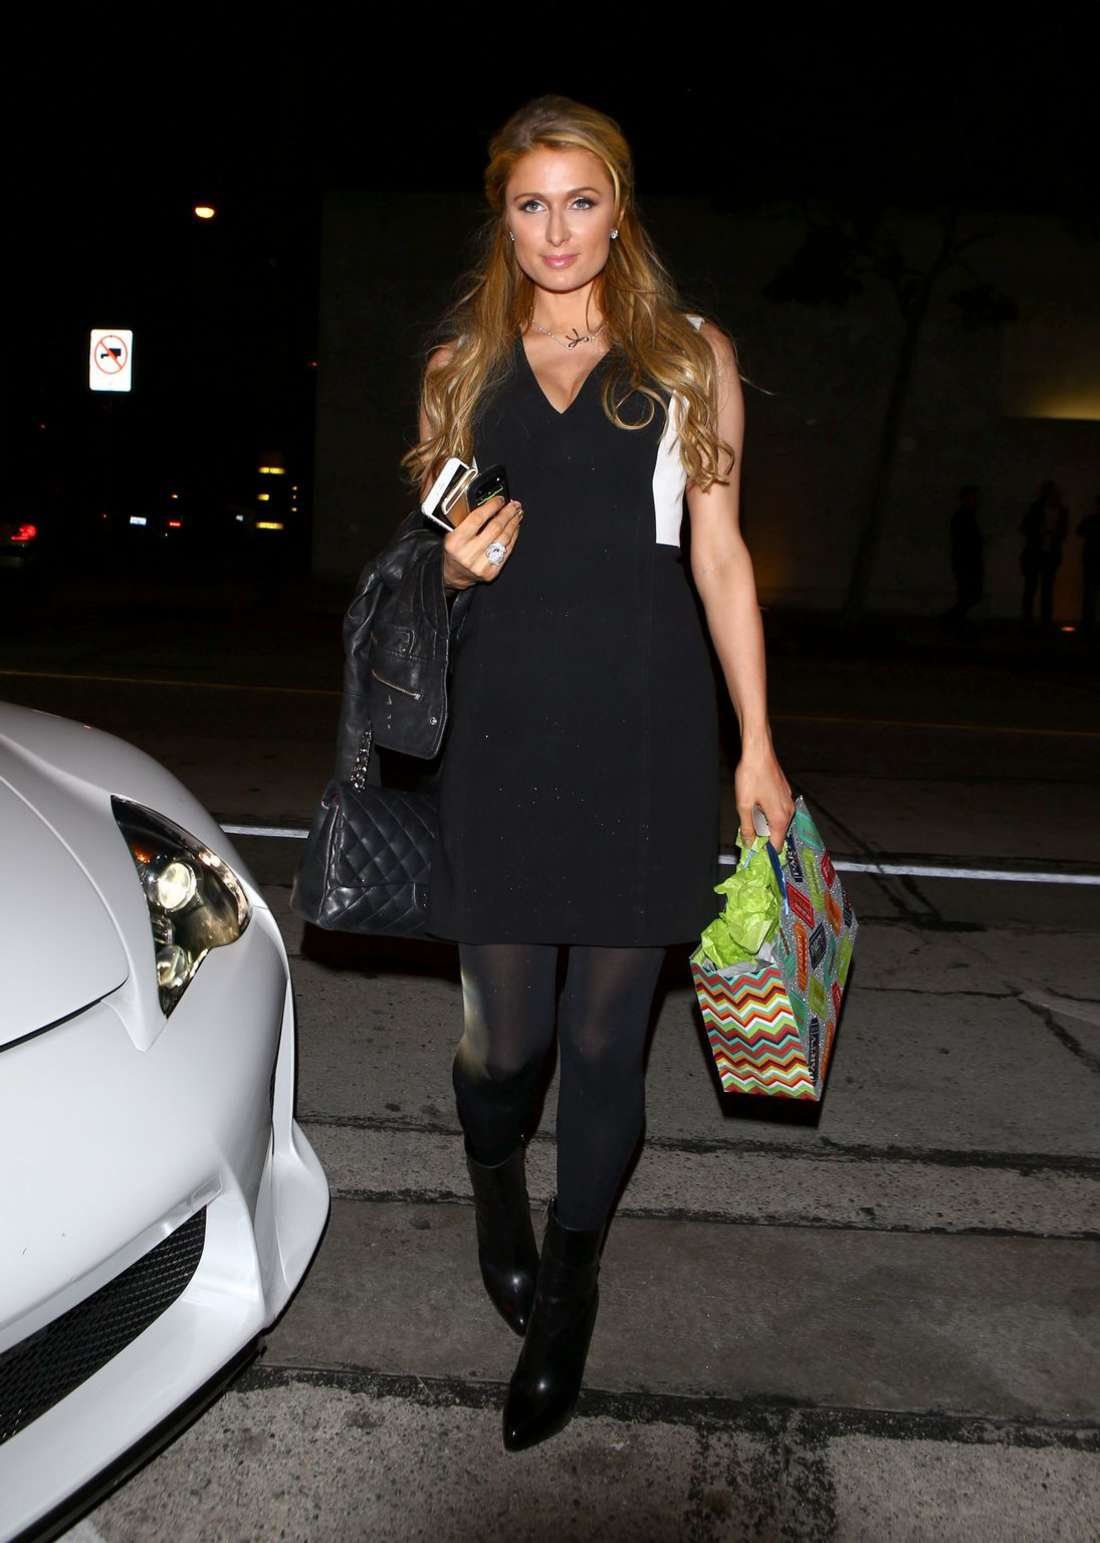 Paris Hilton In Black Dress At Craigs 01 Gotceleb